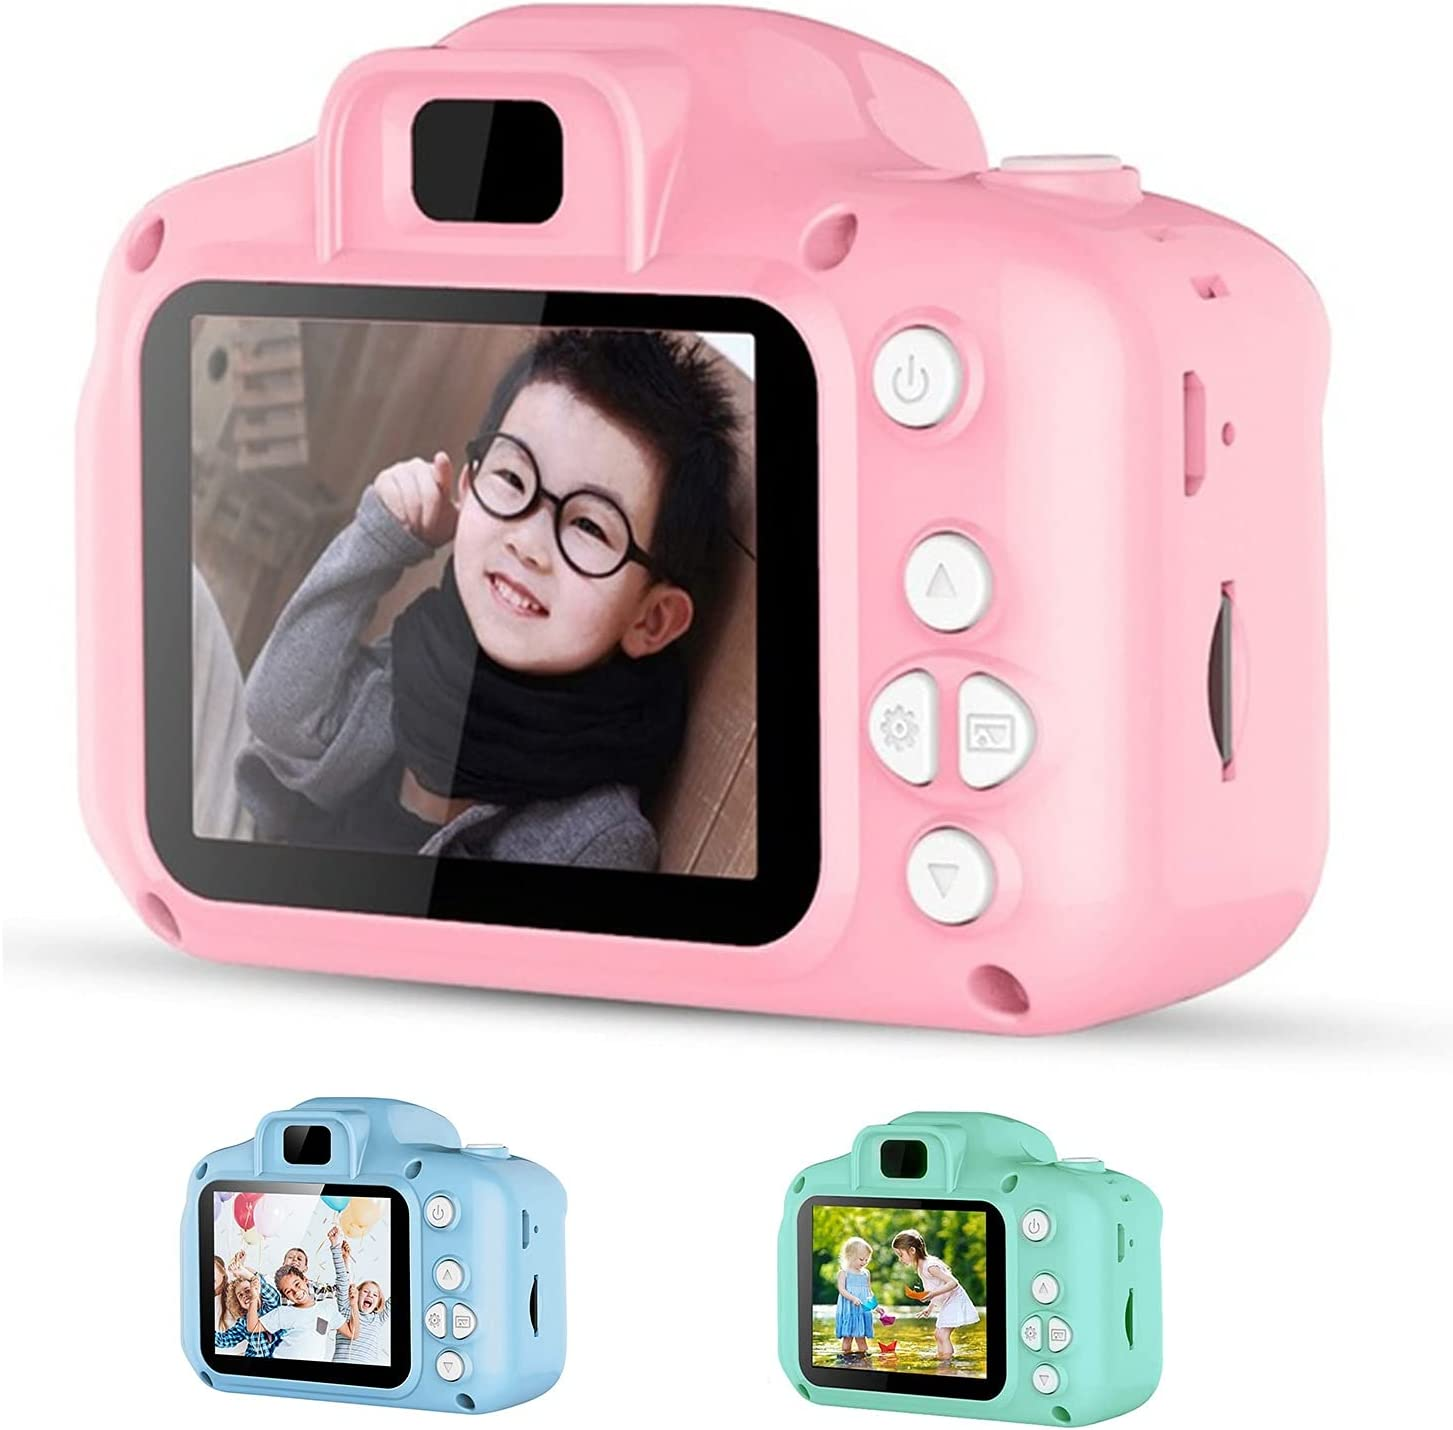 Kids Mini Digital Fort Worth Mall Camera with Photo Taking Over item handling ☆ Vide USB Cable